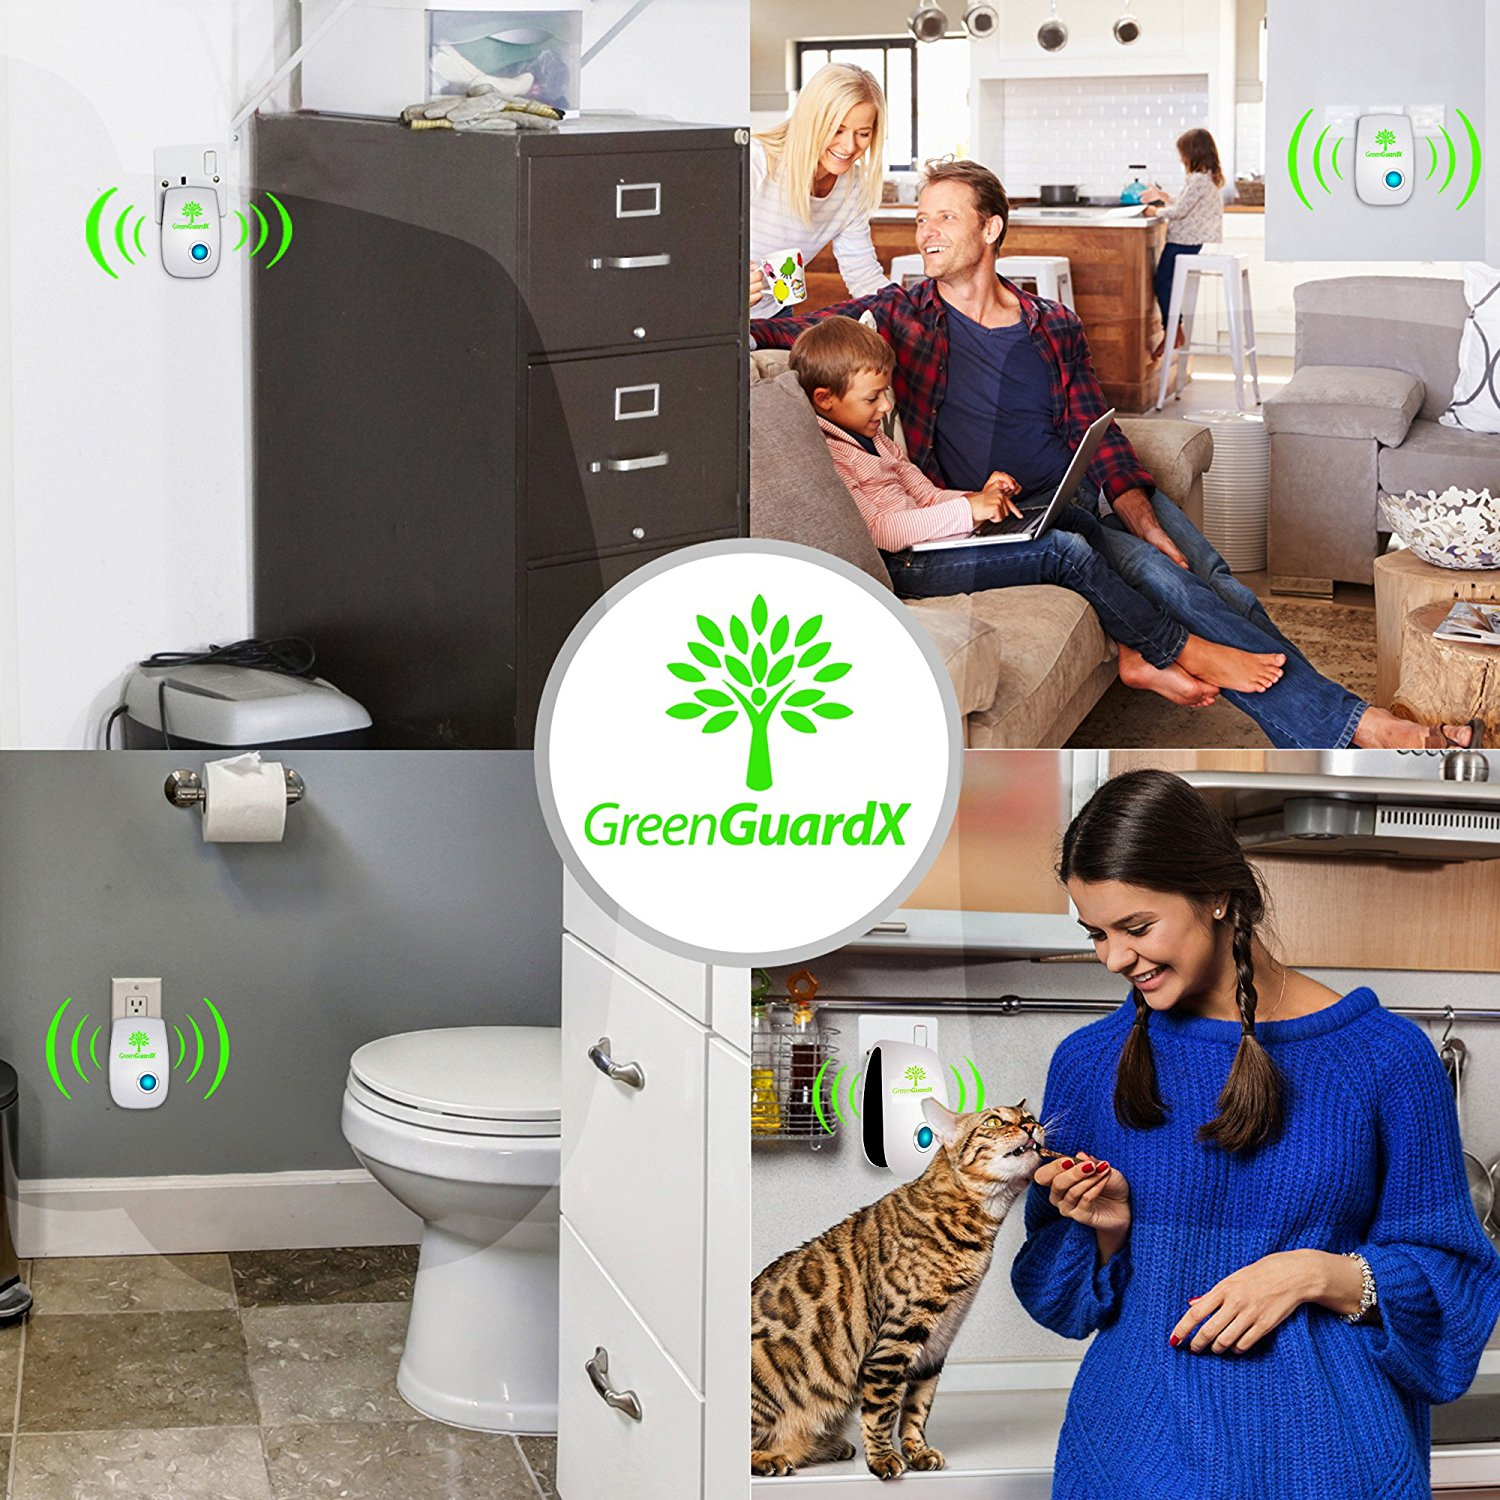 the pest control repeller Safe chemical free indoor pest control device designed to help reduce nesting  within the walls of mice, rats and roaches safe for all non-rodent based.